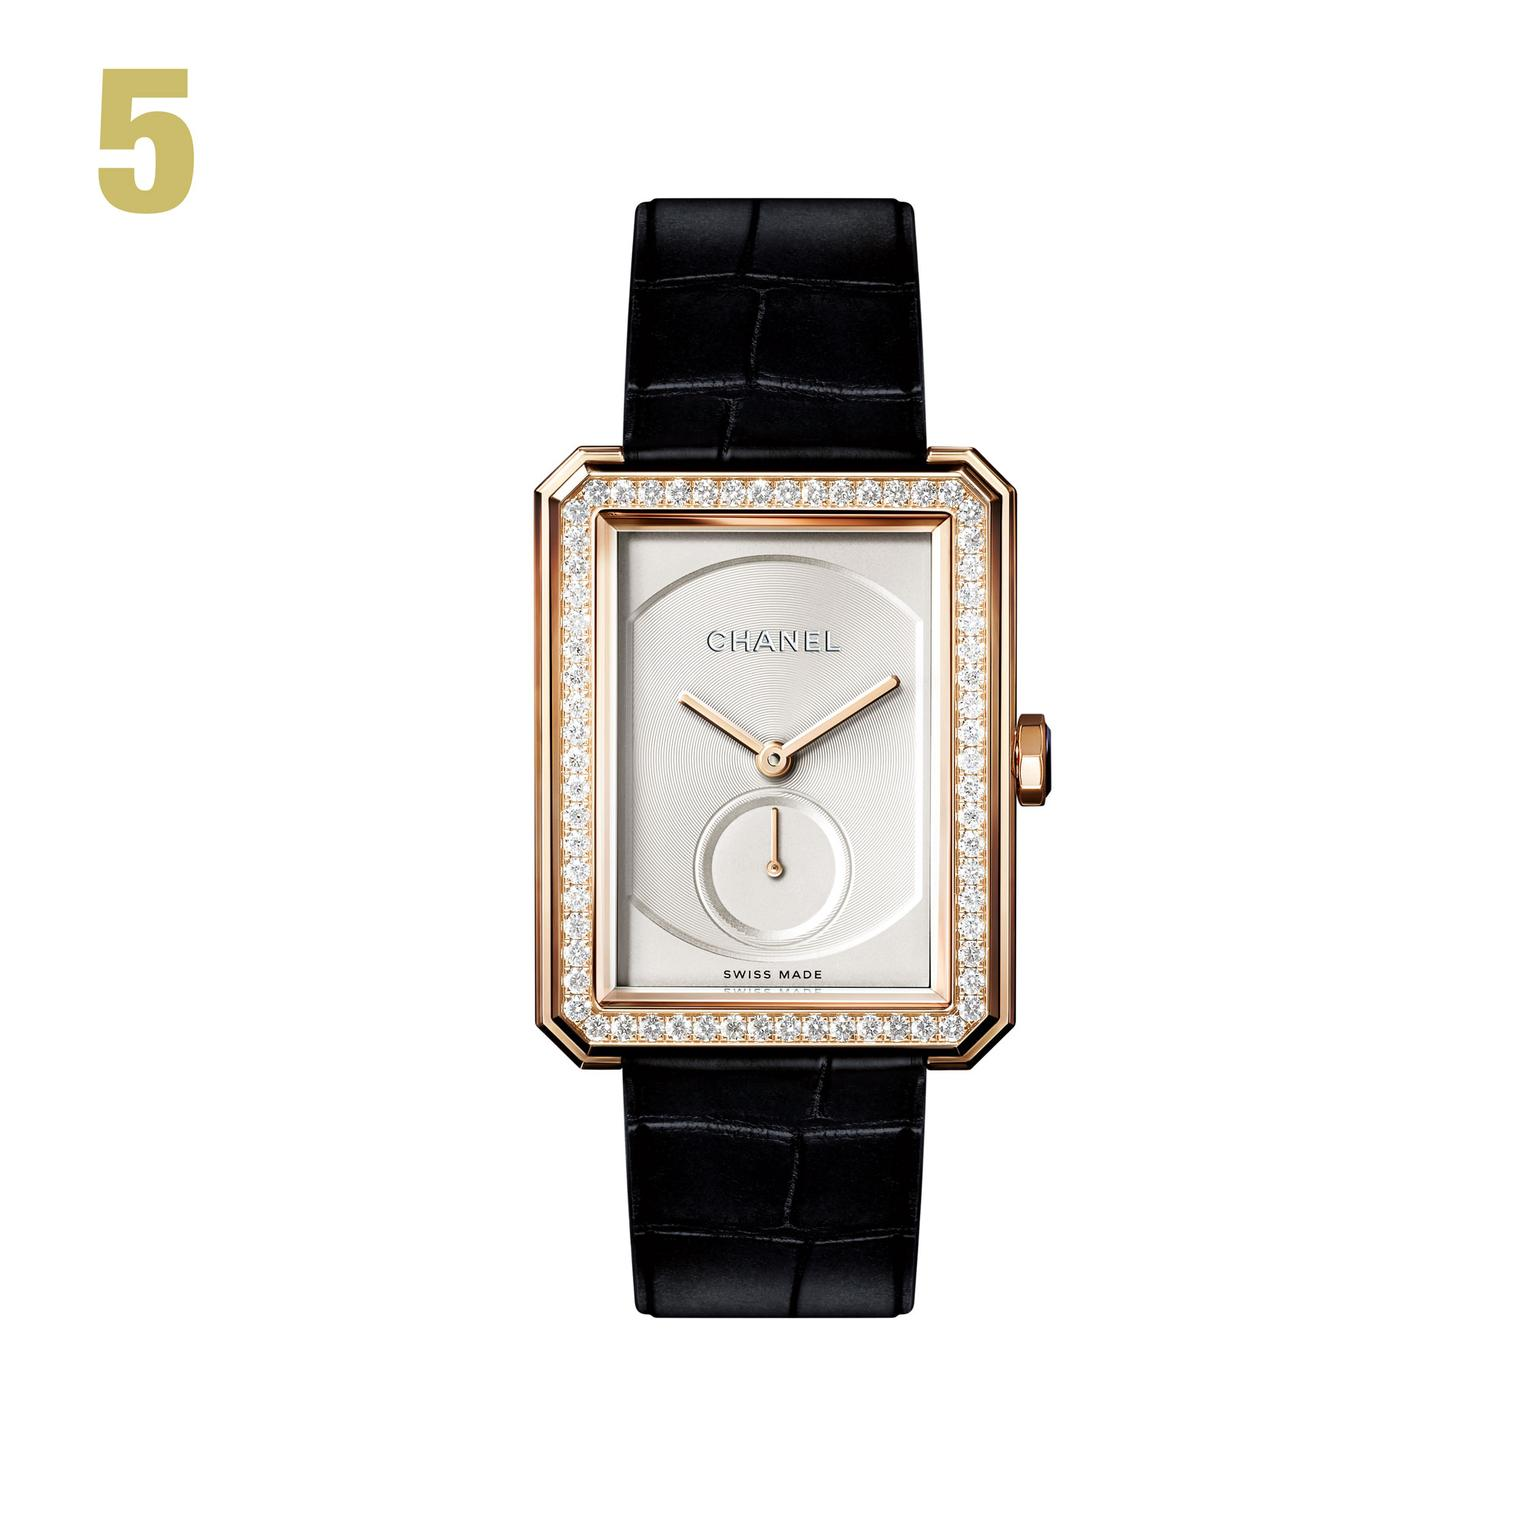 5 Chanel diamond-set medium-sized Boy.Friend watch